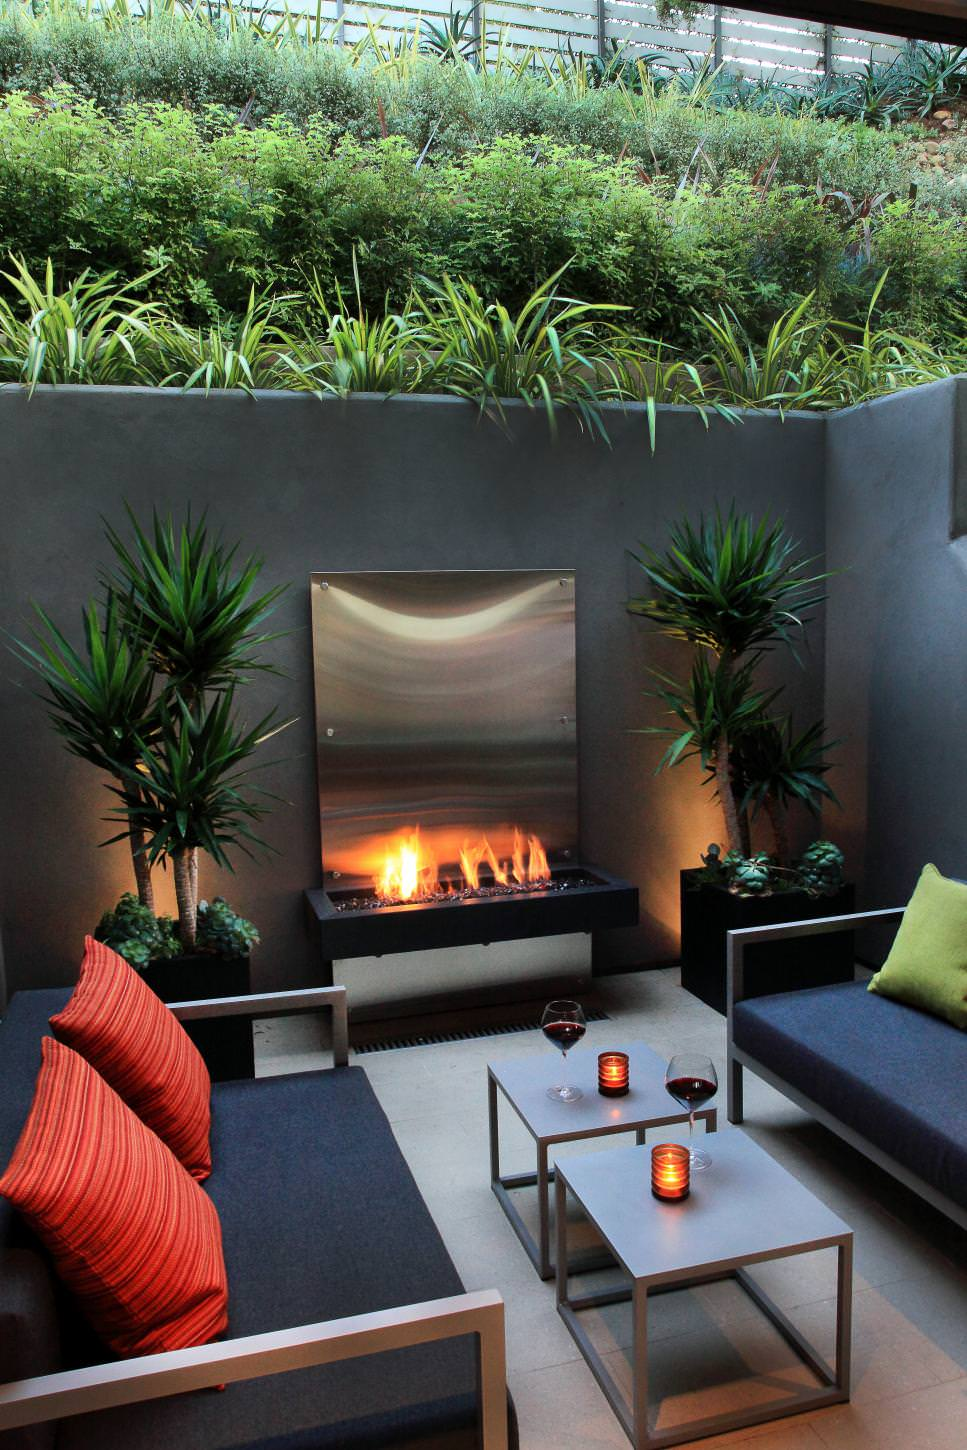 23 concrete wall designs decor ideas design trends for Outside patio design ideas